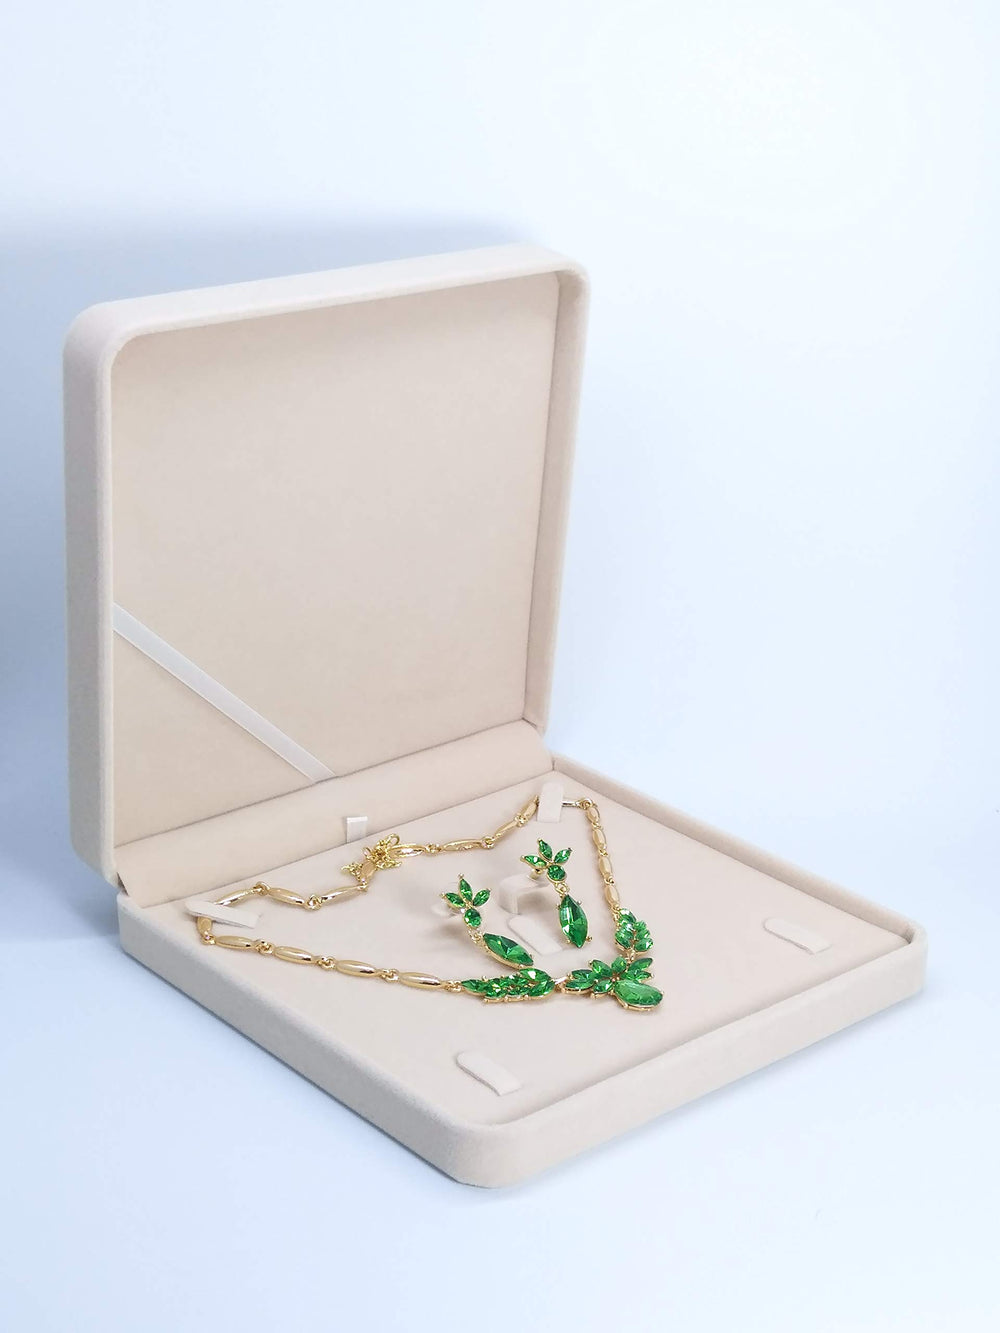 TIKIYOGI Jewelry Set Velvet Box Necklace - Shade & watches